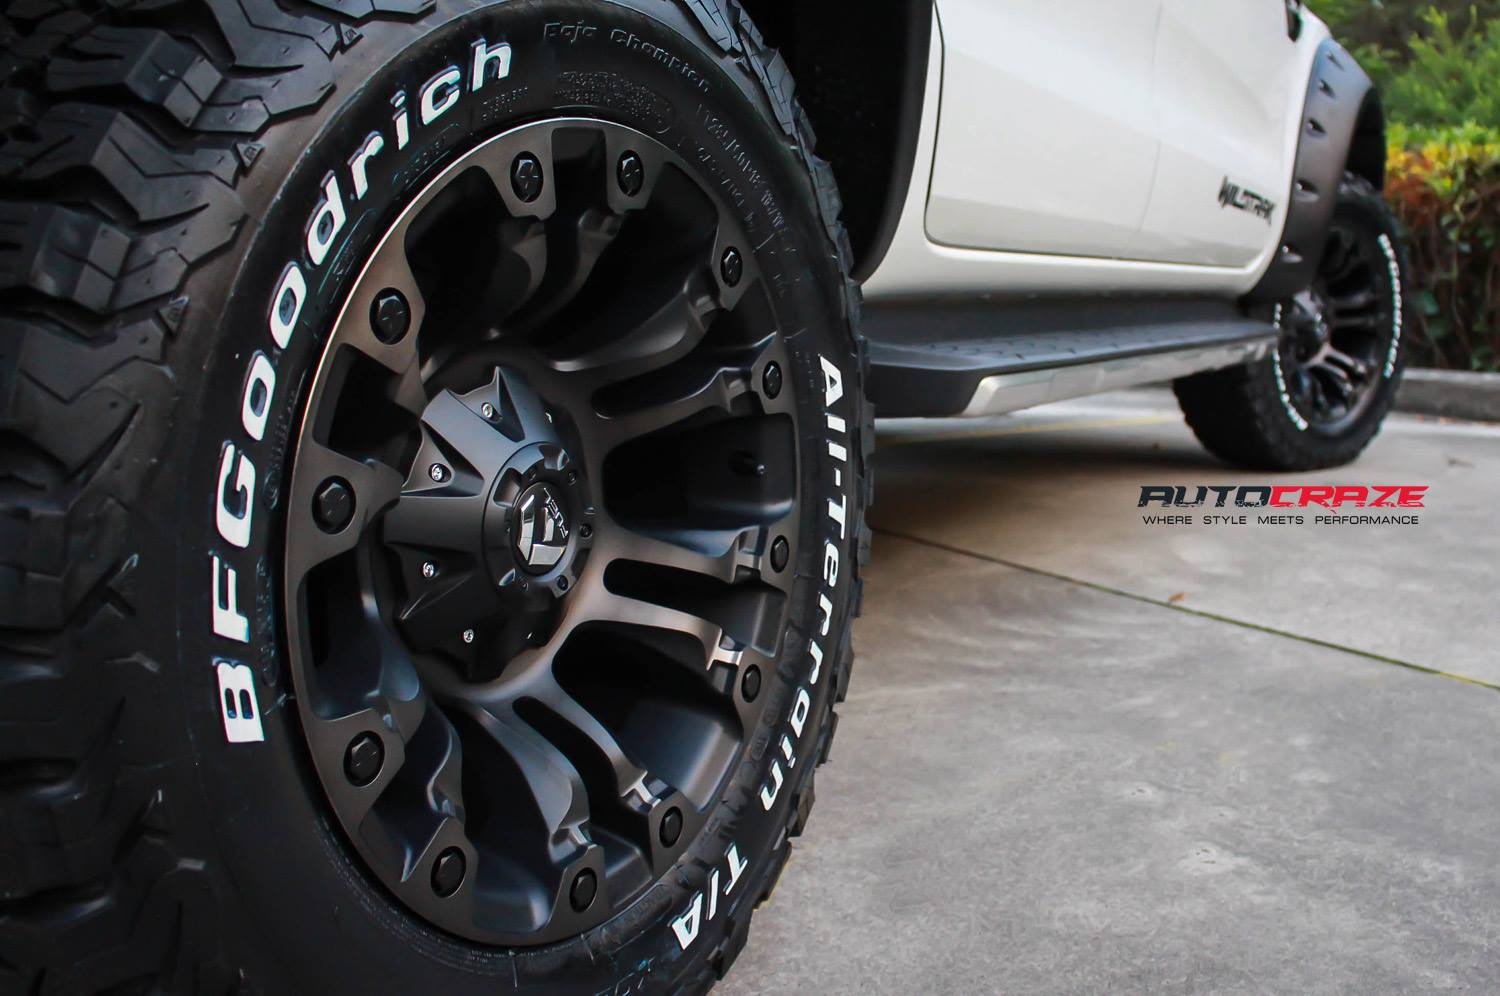 Ford Ranger Wheels Size | Buy Ranger Rims And Tyres For Sale | Autocraze 1800 099 634